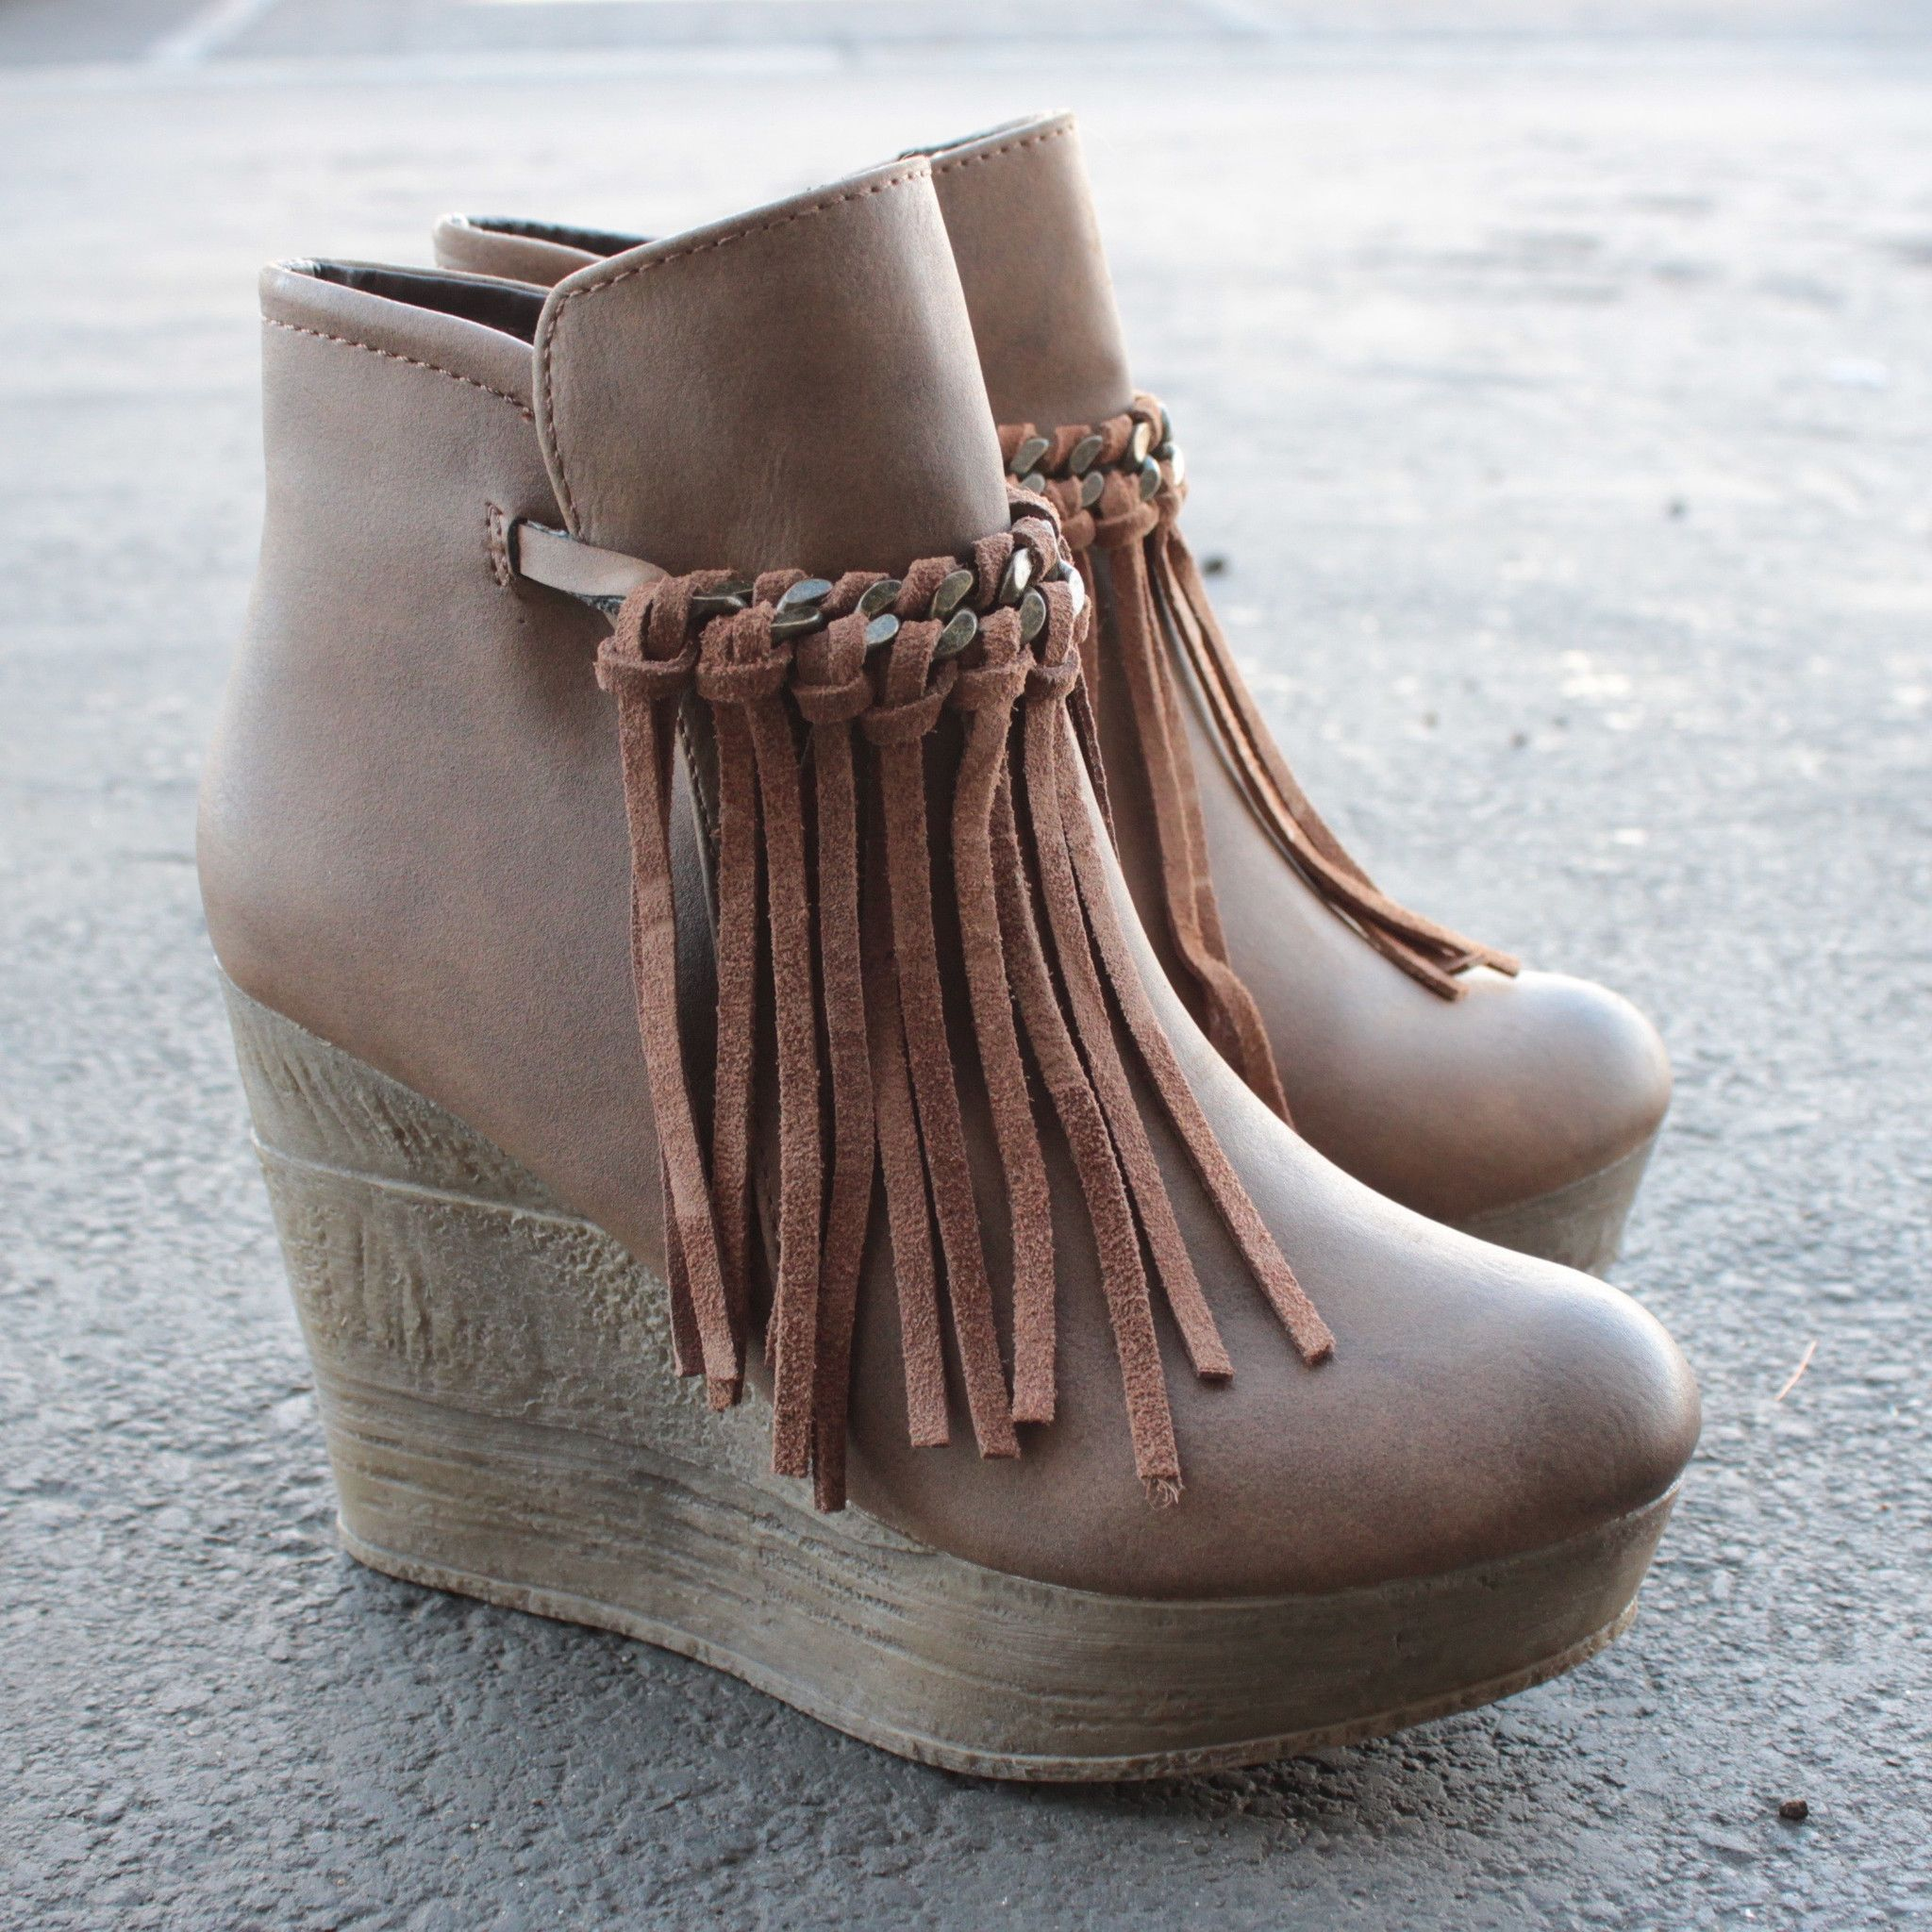 8b542b75b0e sbicca vintage collection zepp wedge fringe ankle bootie (more colors)